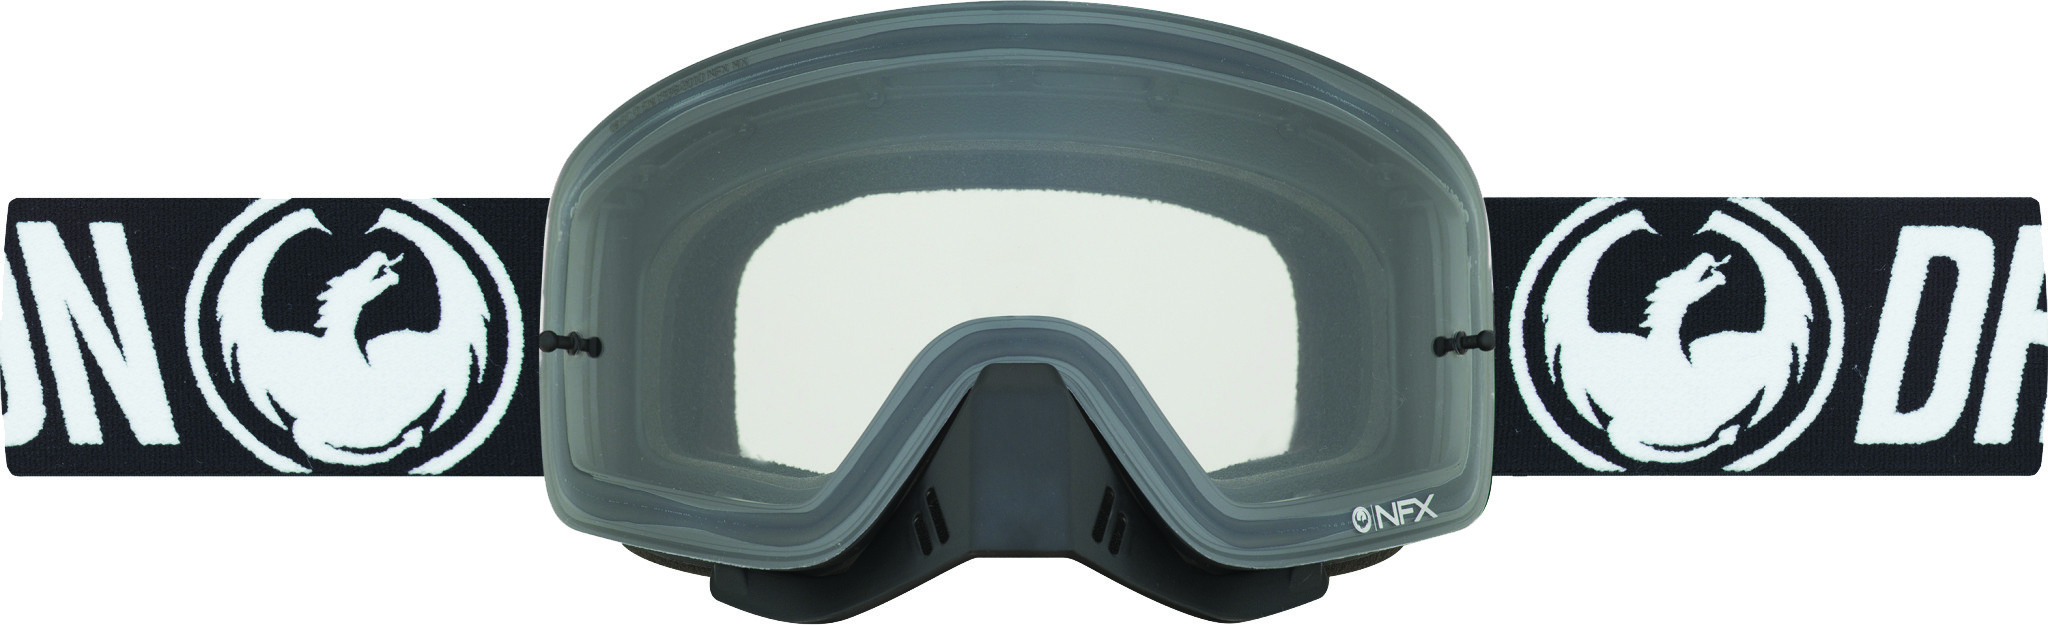 Nfx Goggle Coal W/Clear Lens